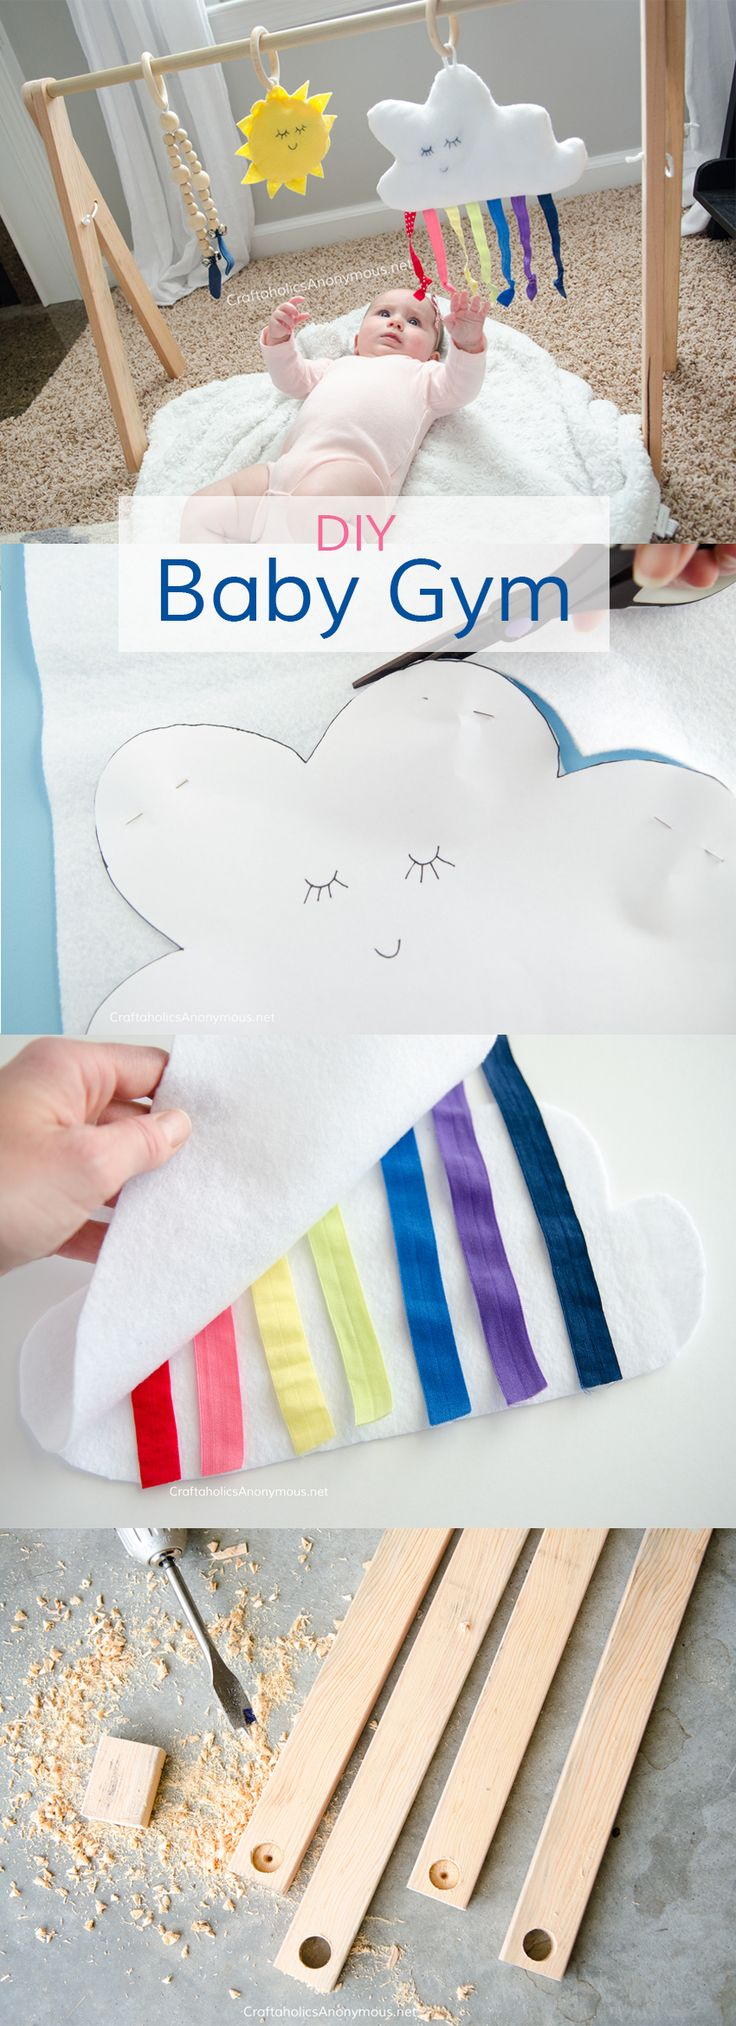 Super love this idea for you new baby at home! Anyone would love to receive these as christmas gifts ;)